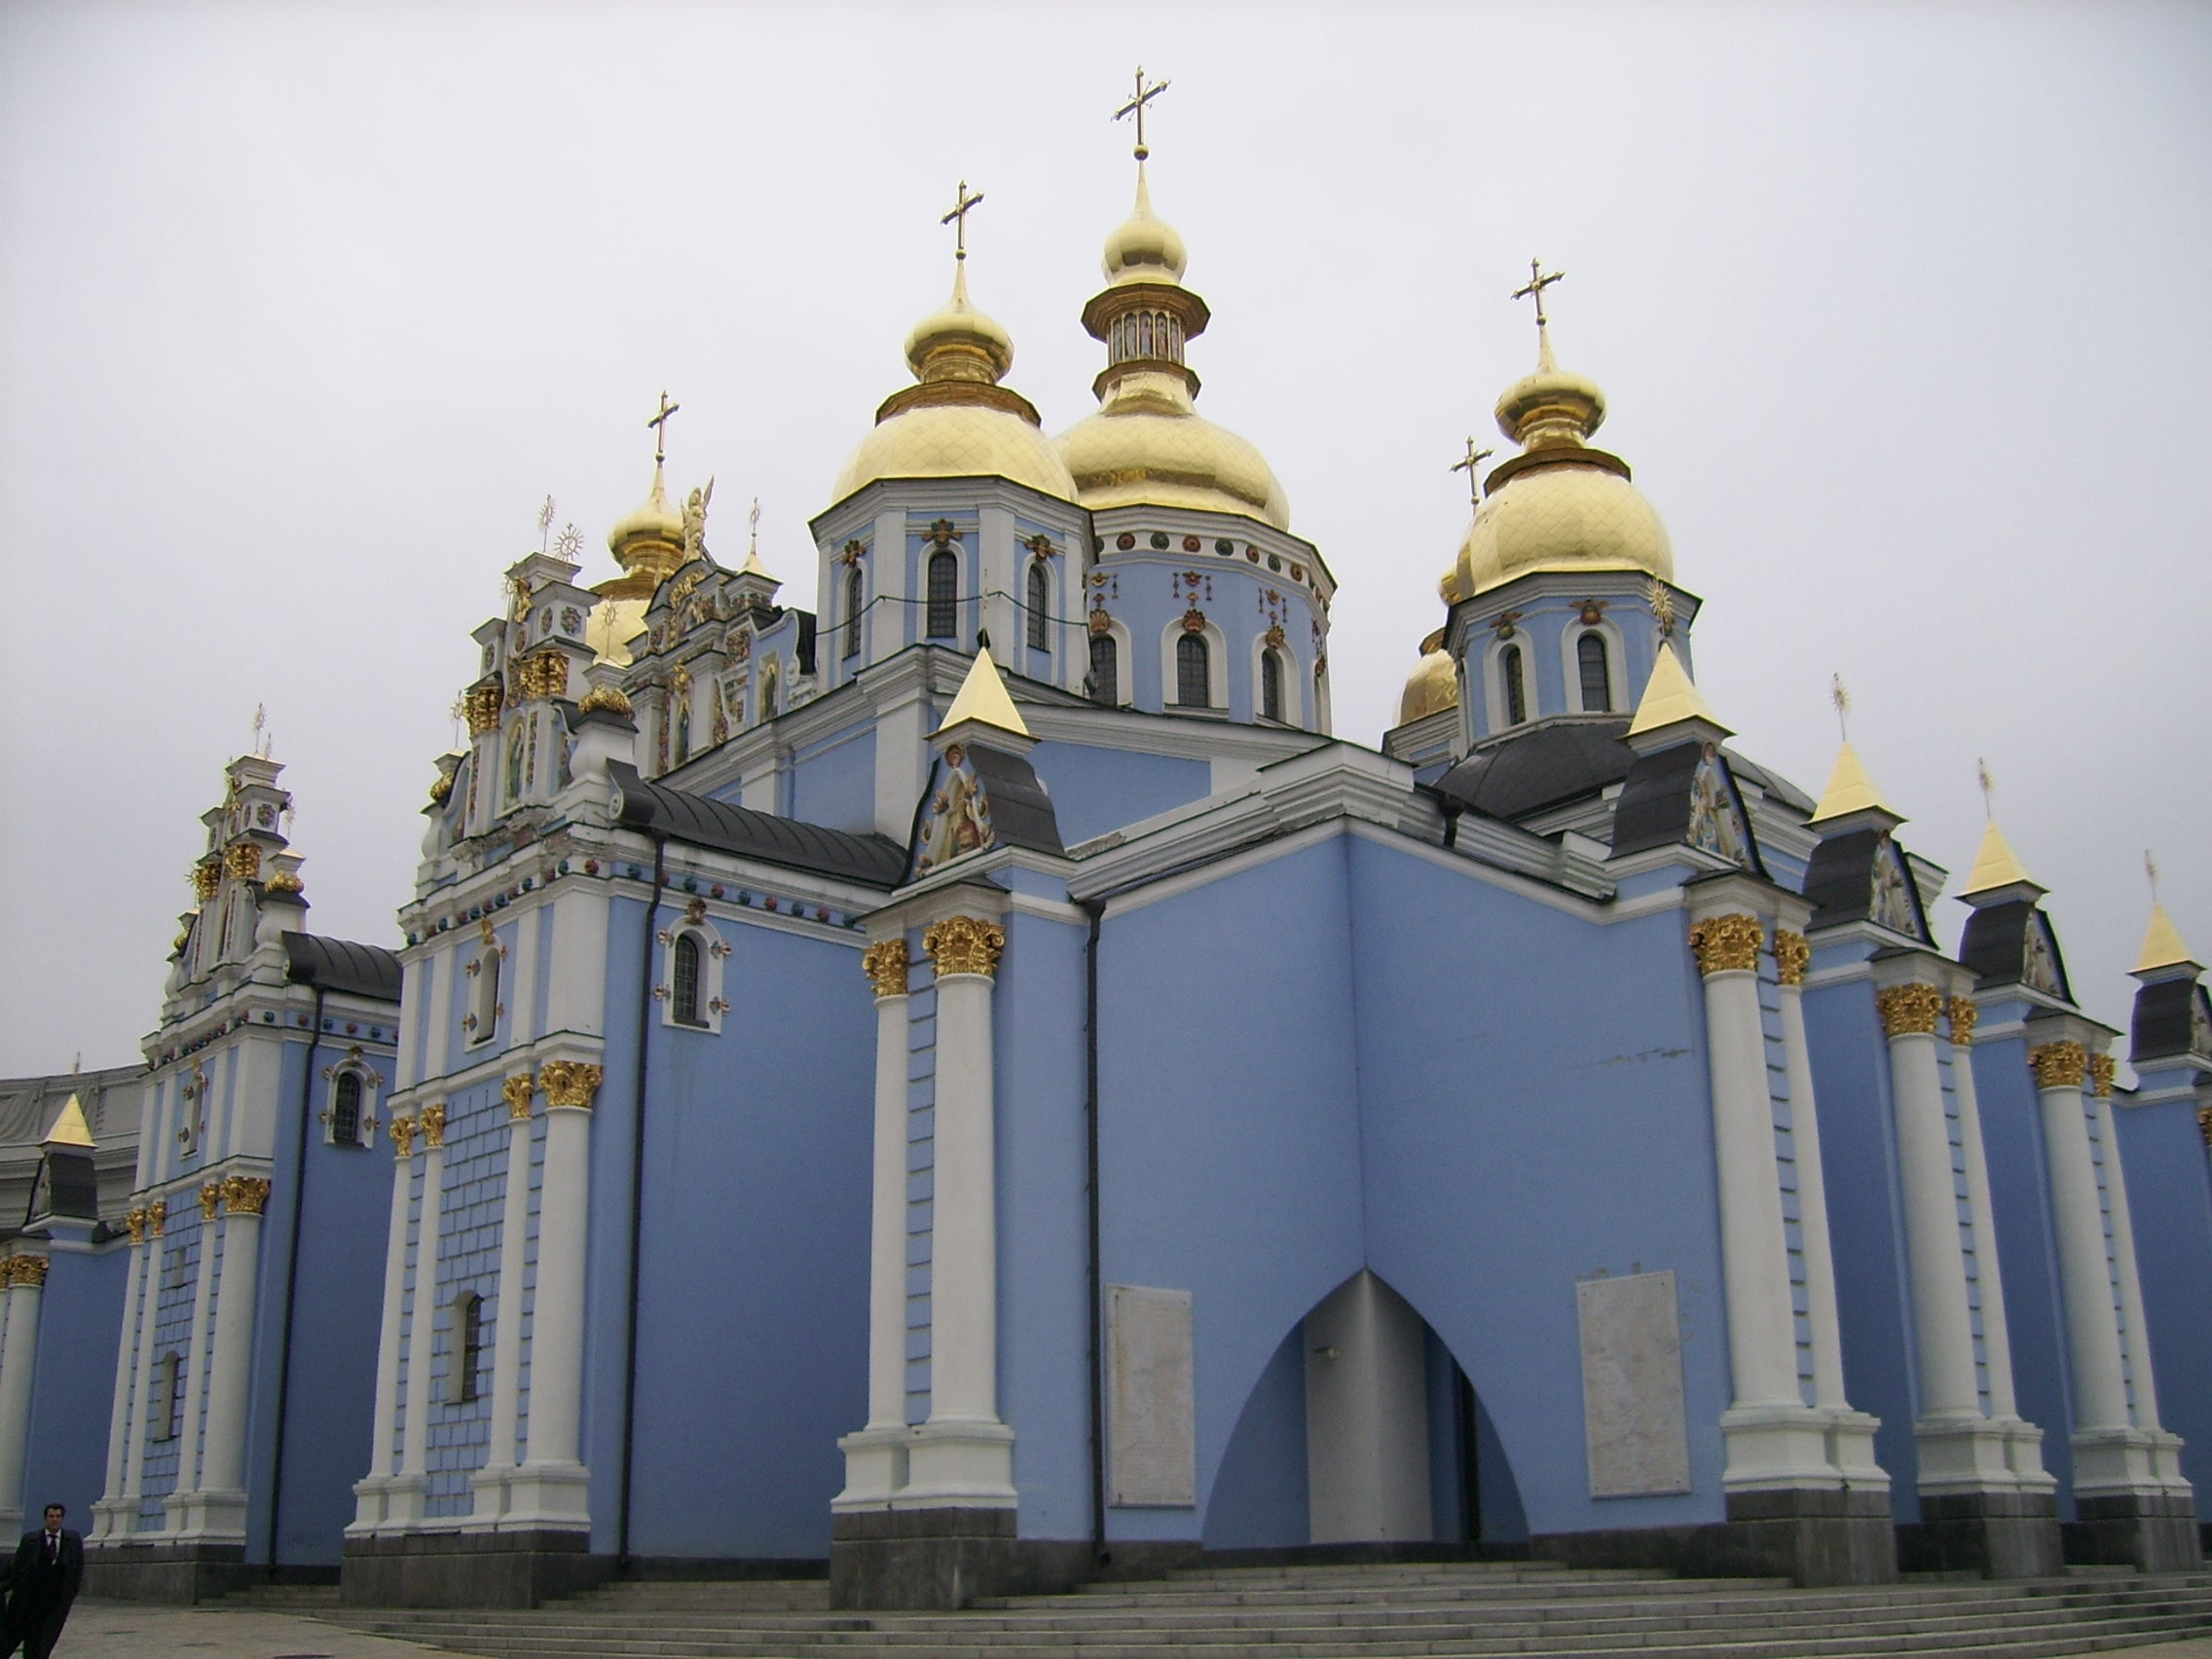 Temple in Ukraine